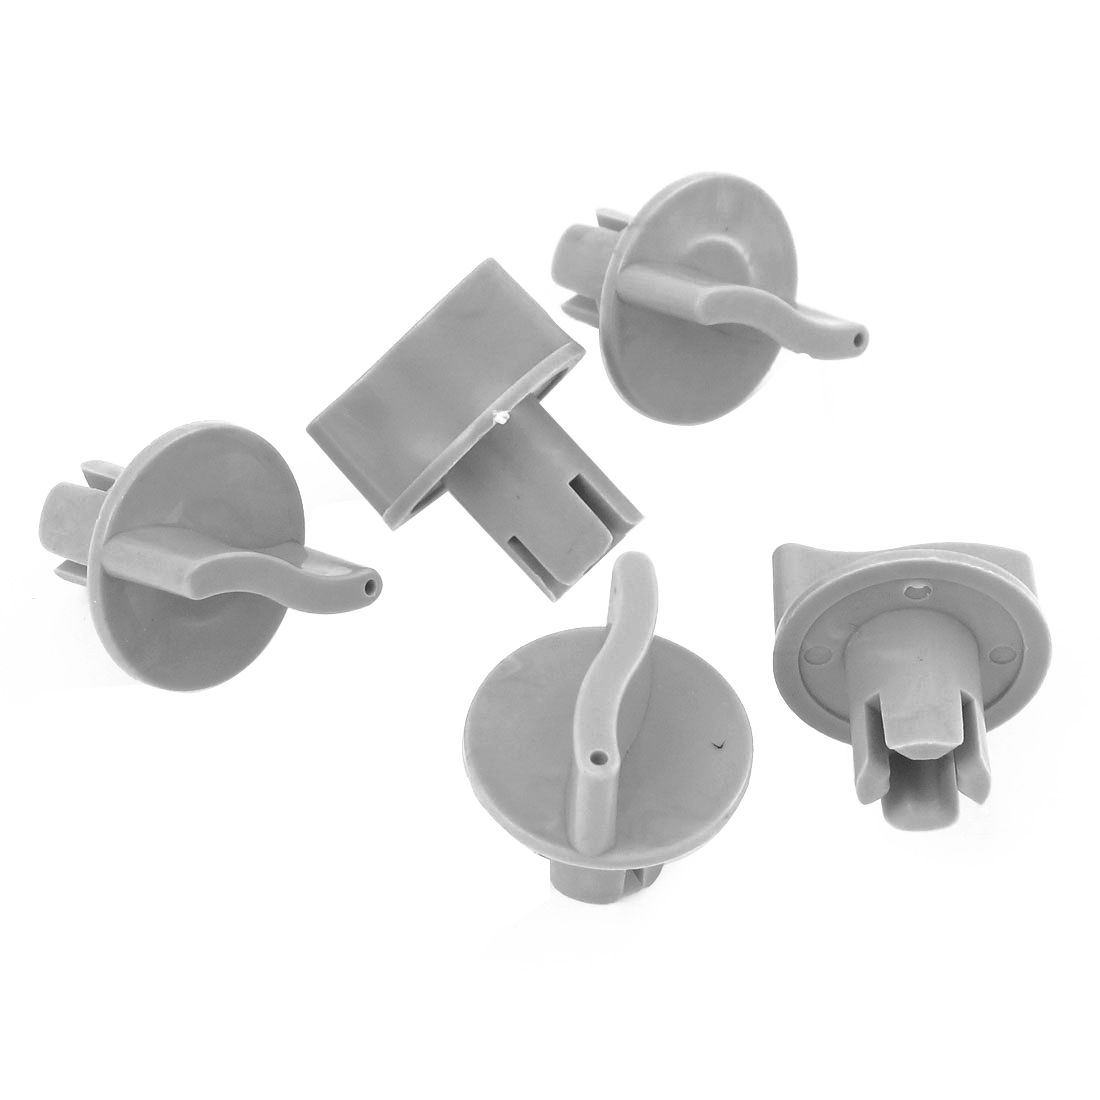 5 Pcs Gray Plastic Easily Install Control Knobs Gray for Heater Climate Fan